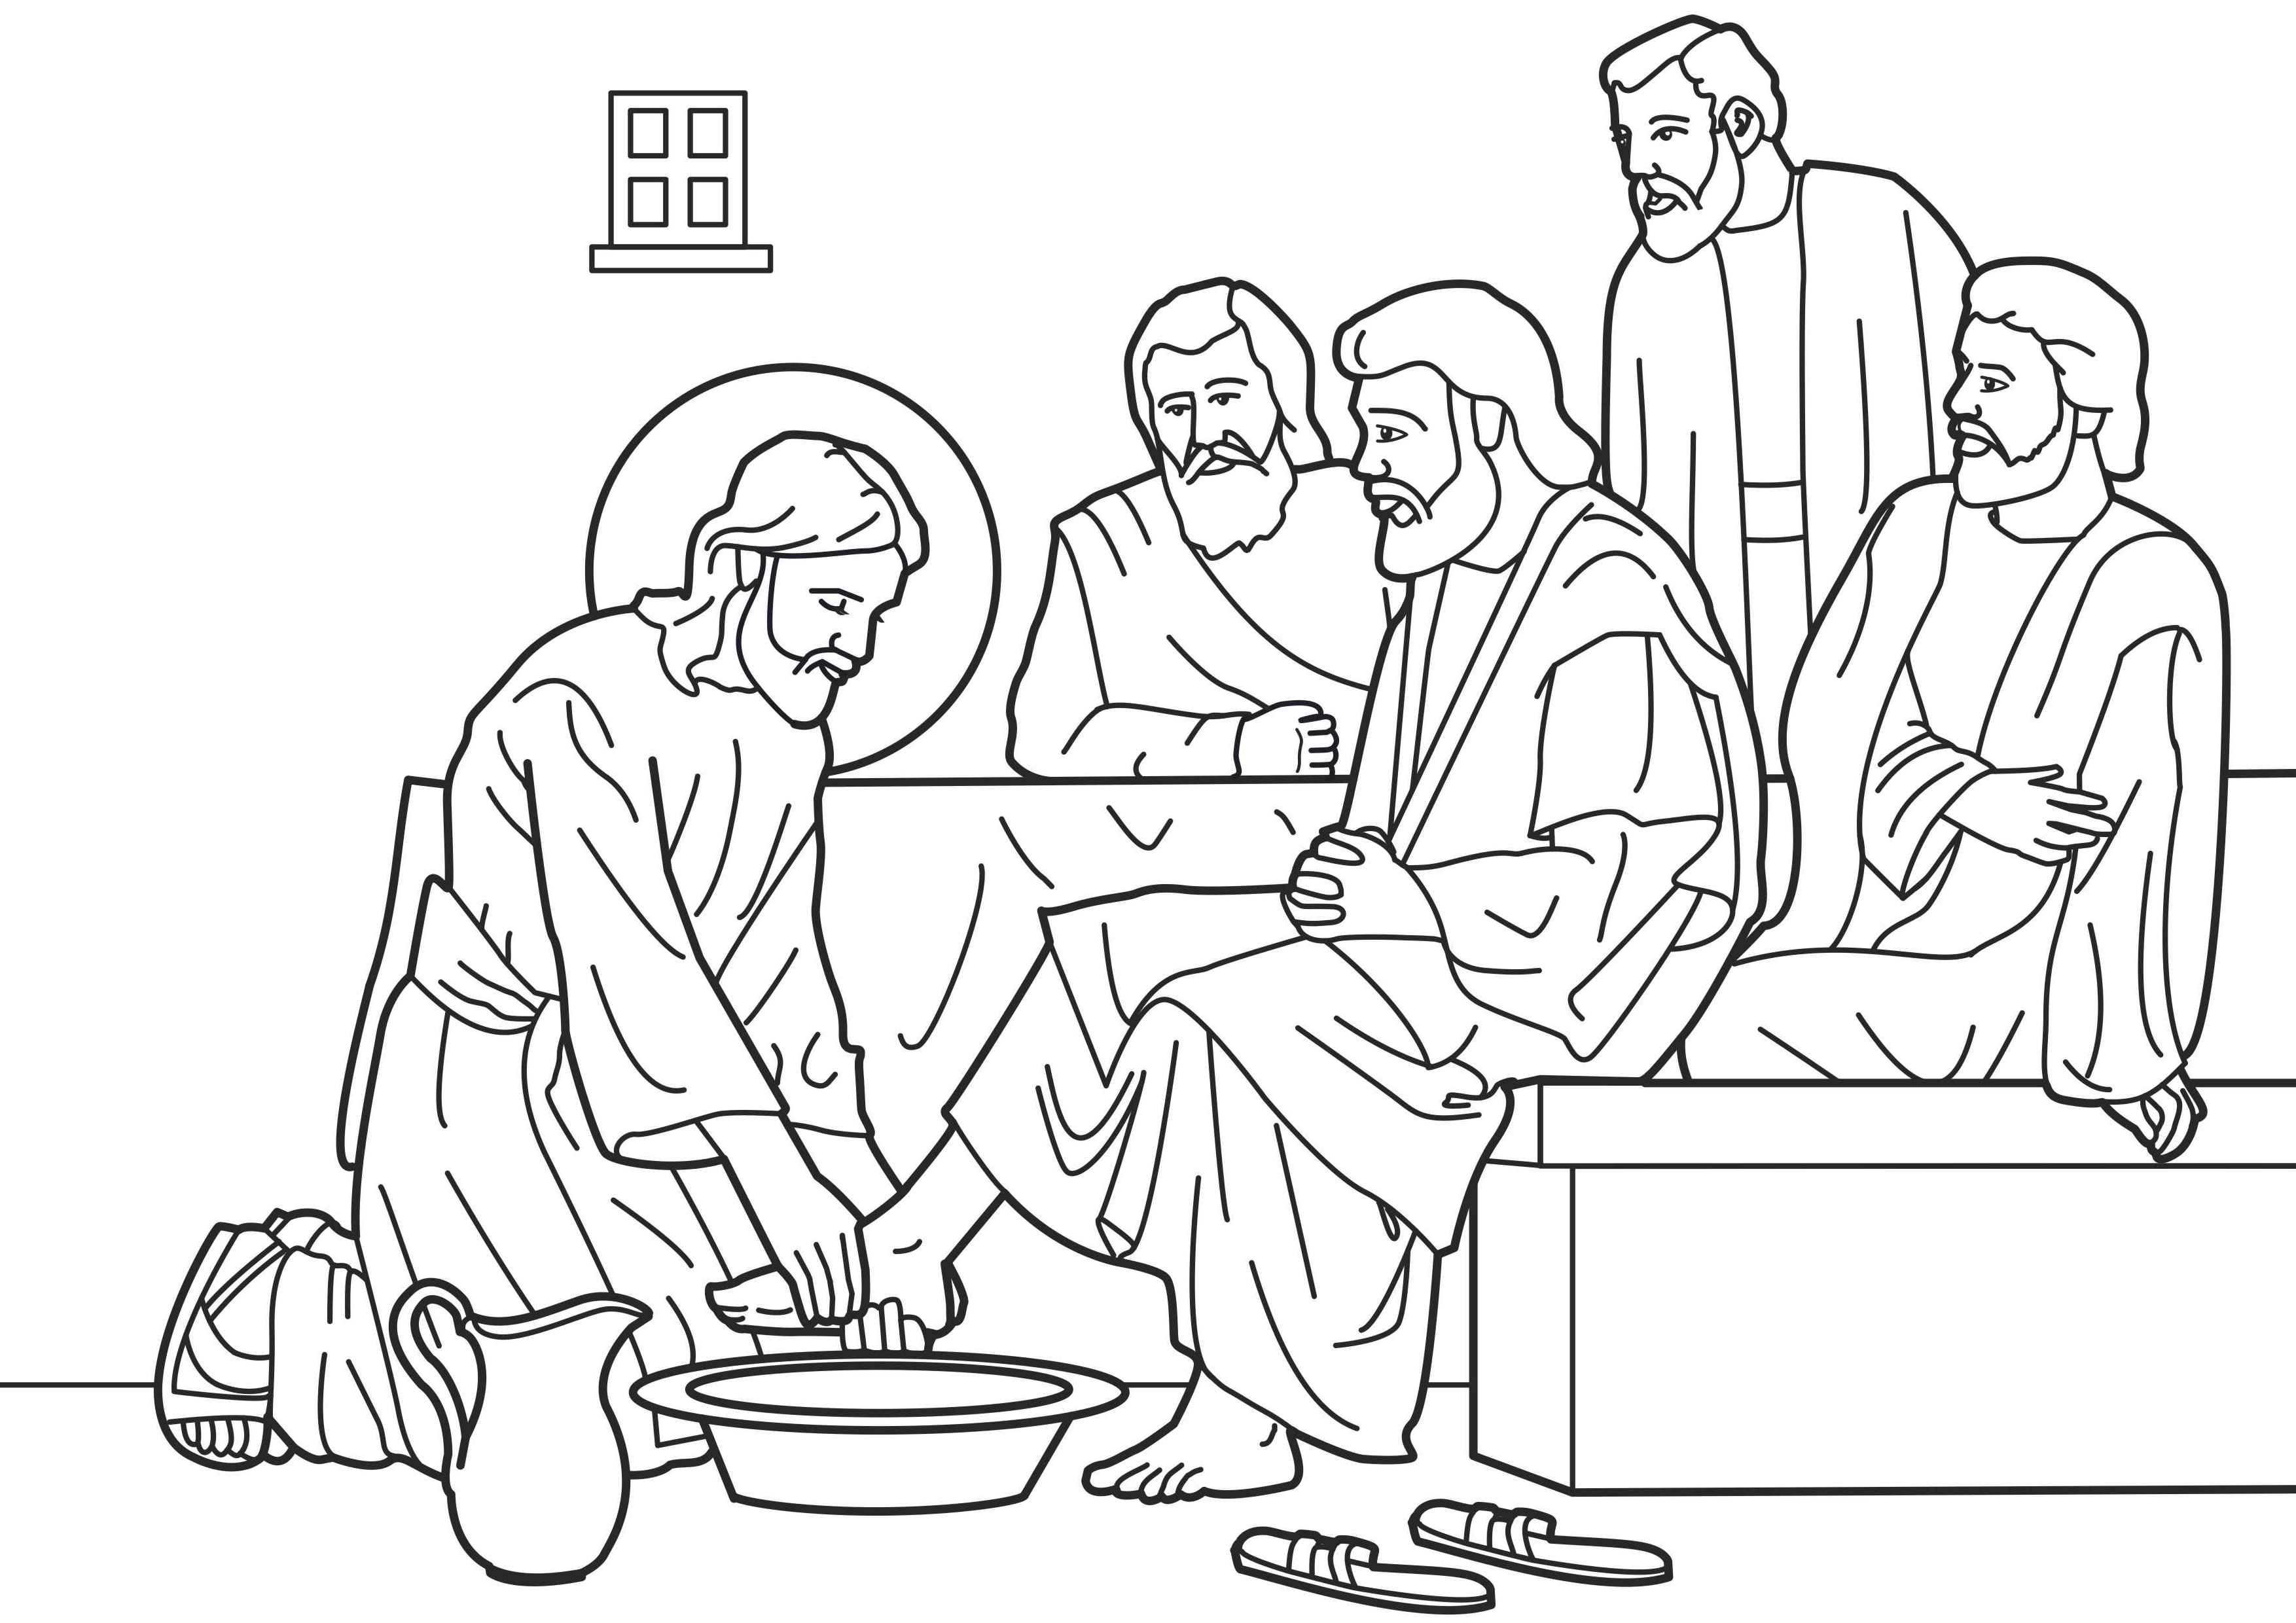 jesus washes the disciples feet coloring page jesus washes the disciples feet coloring page washing disciples page jesus feet the coloring washes